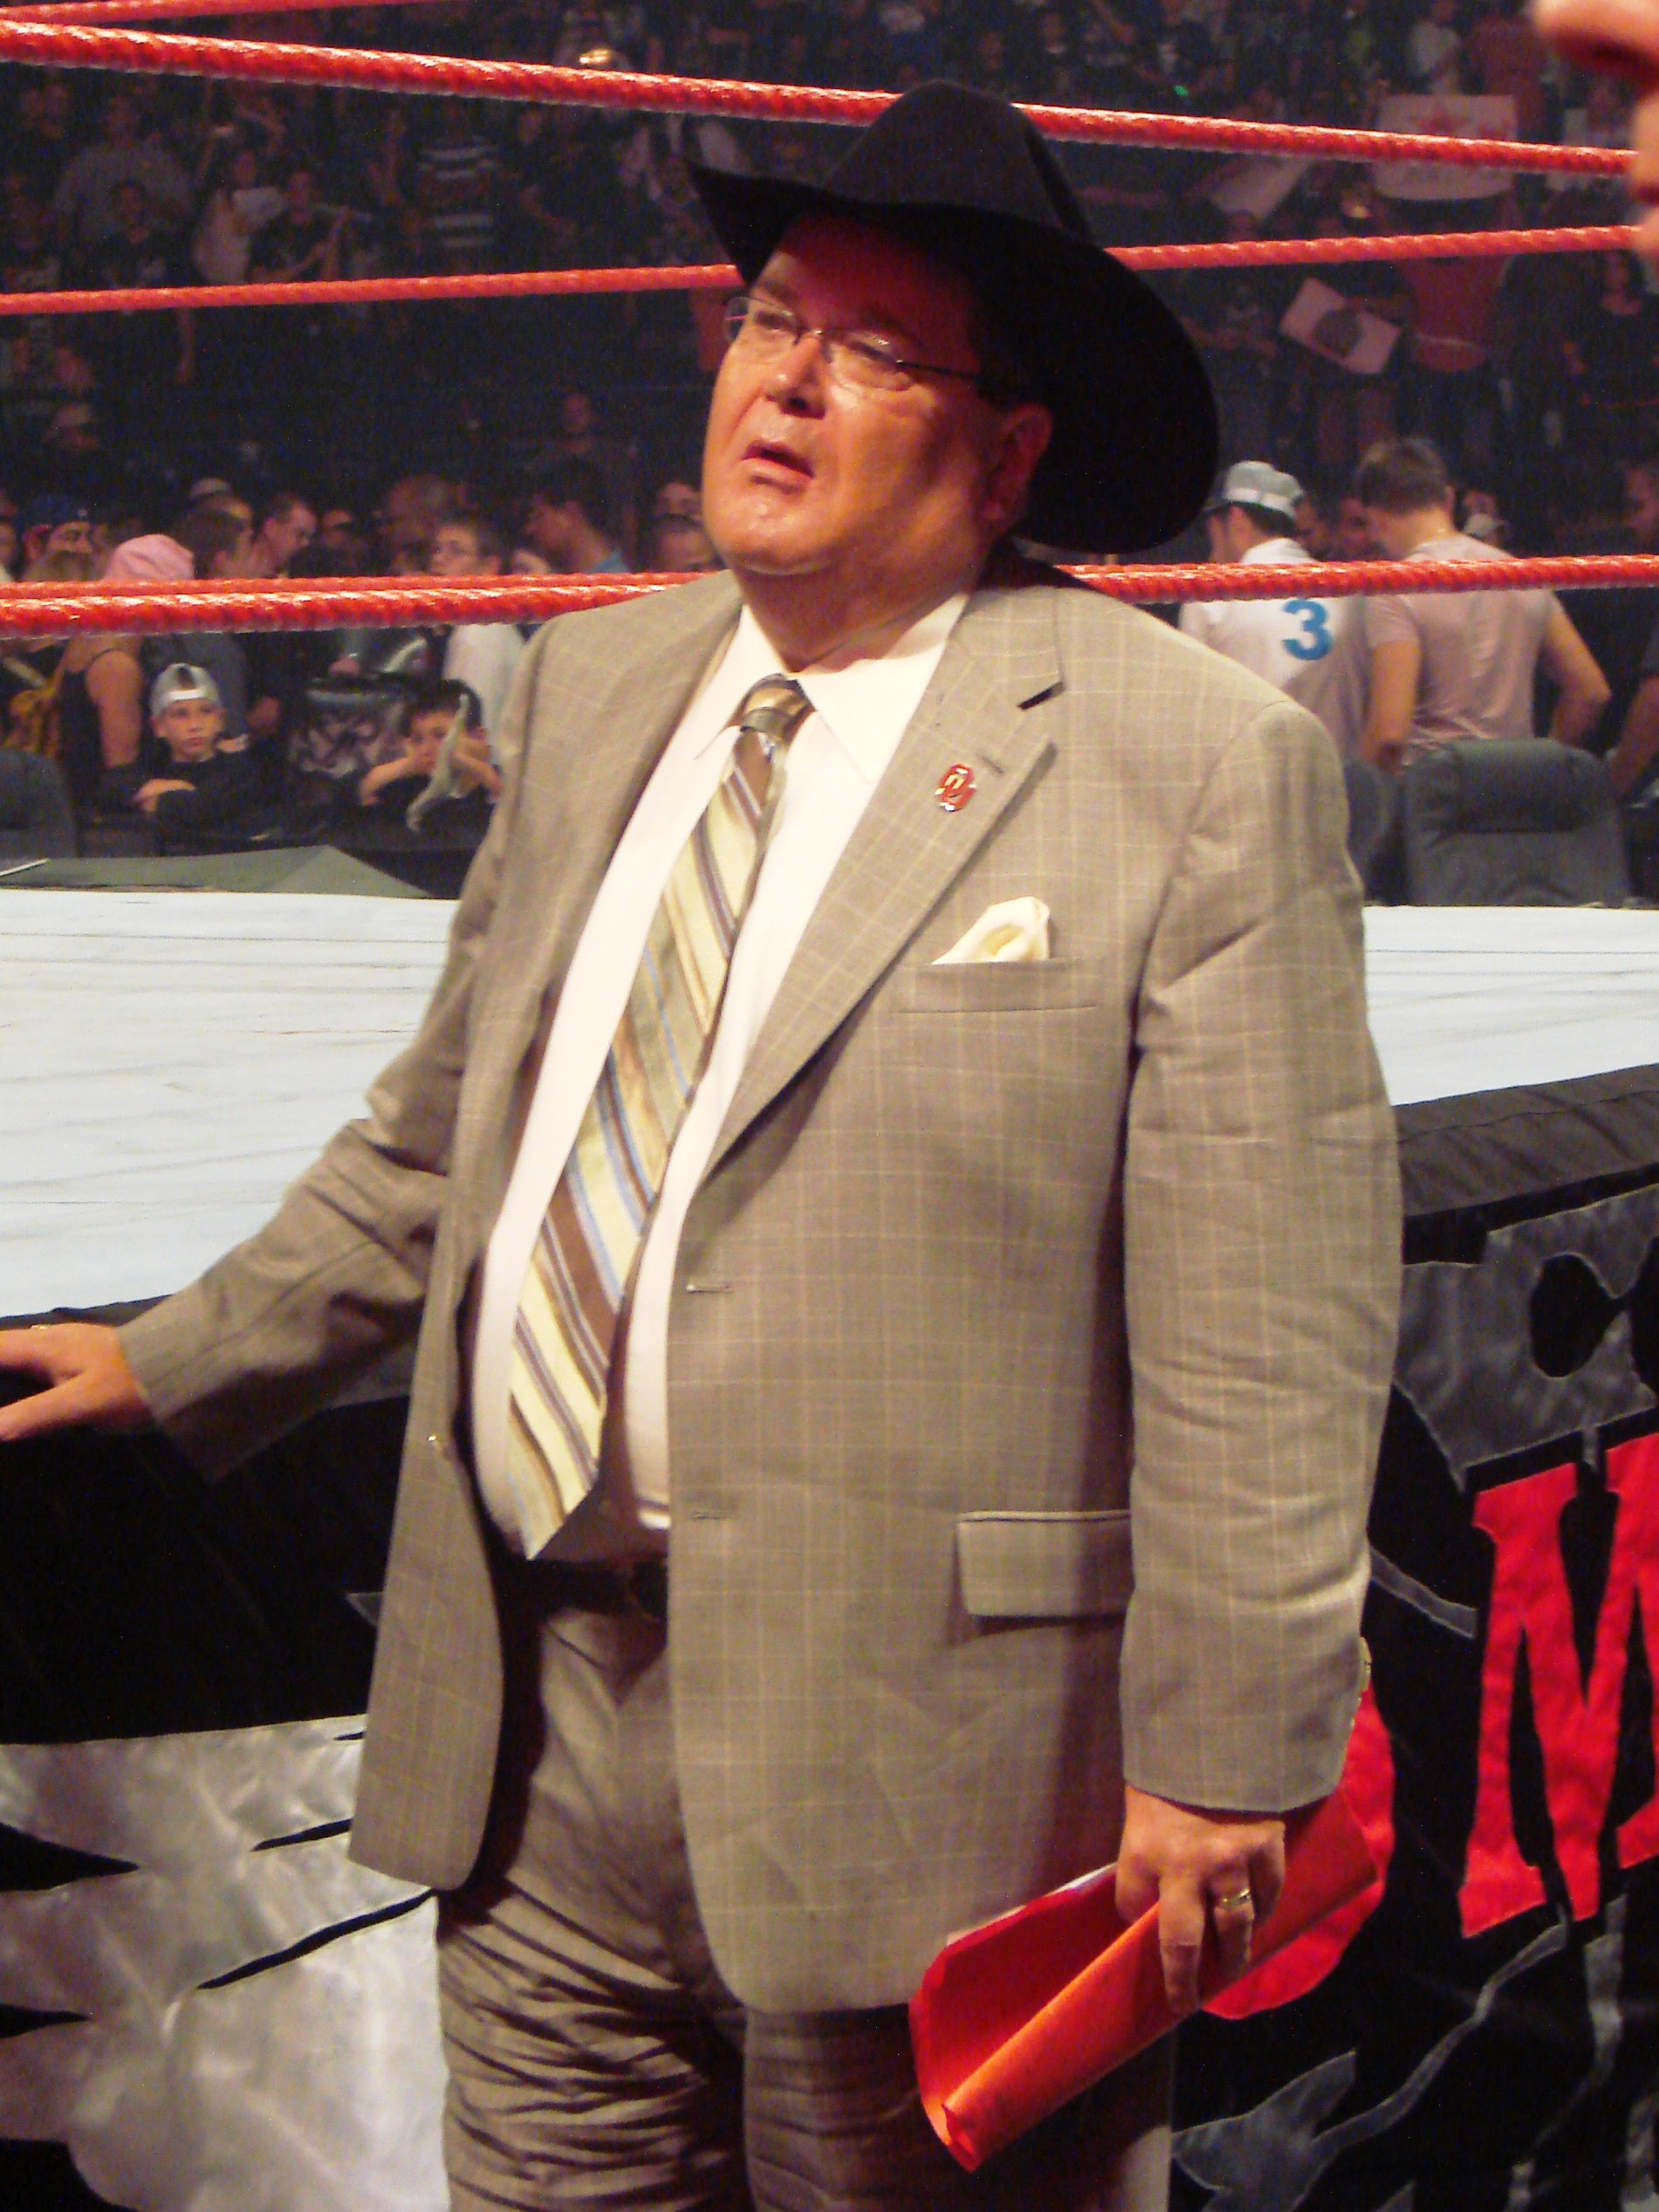 WWE Hall of Famer Jim Ross has endorsed Styles